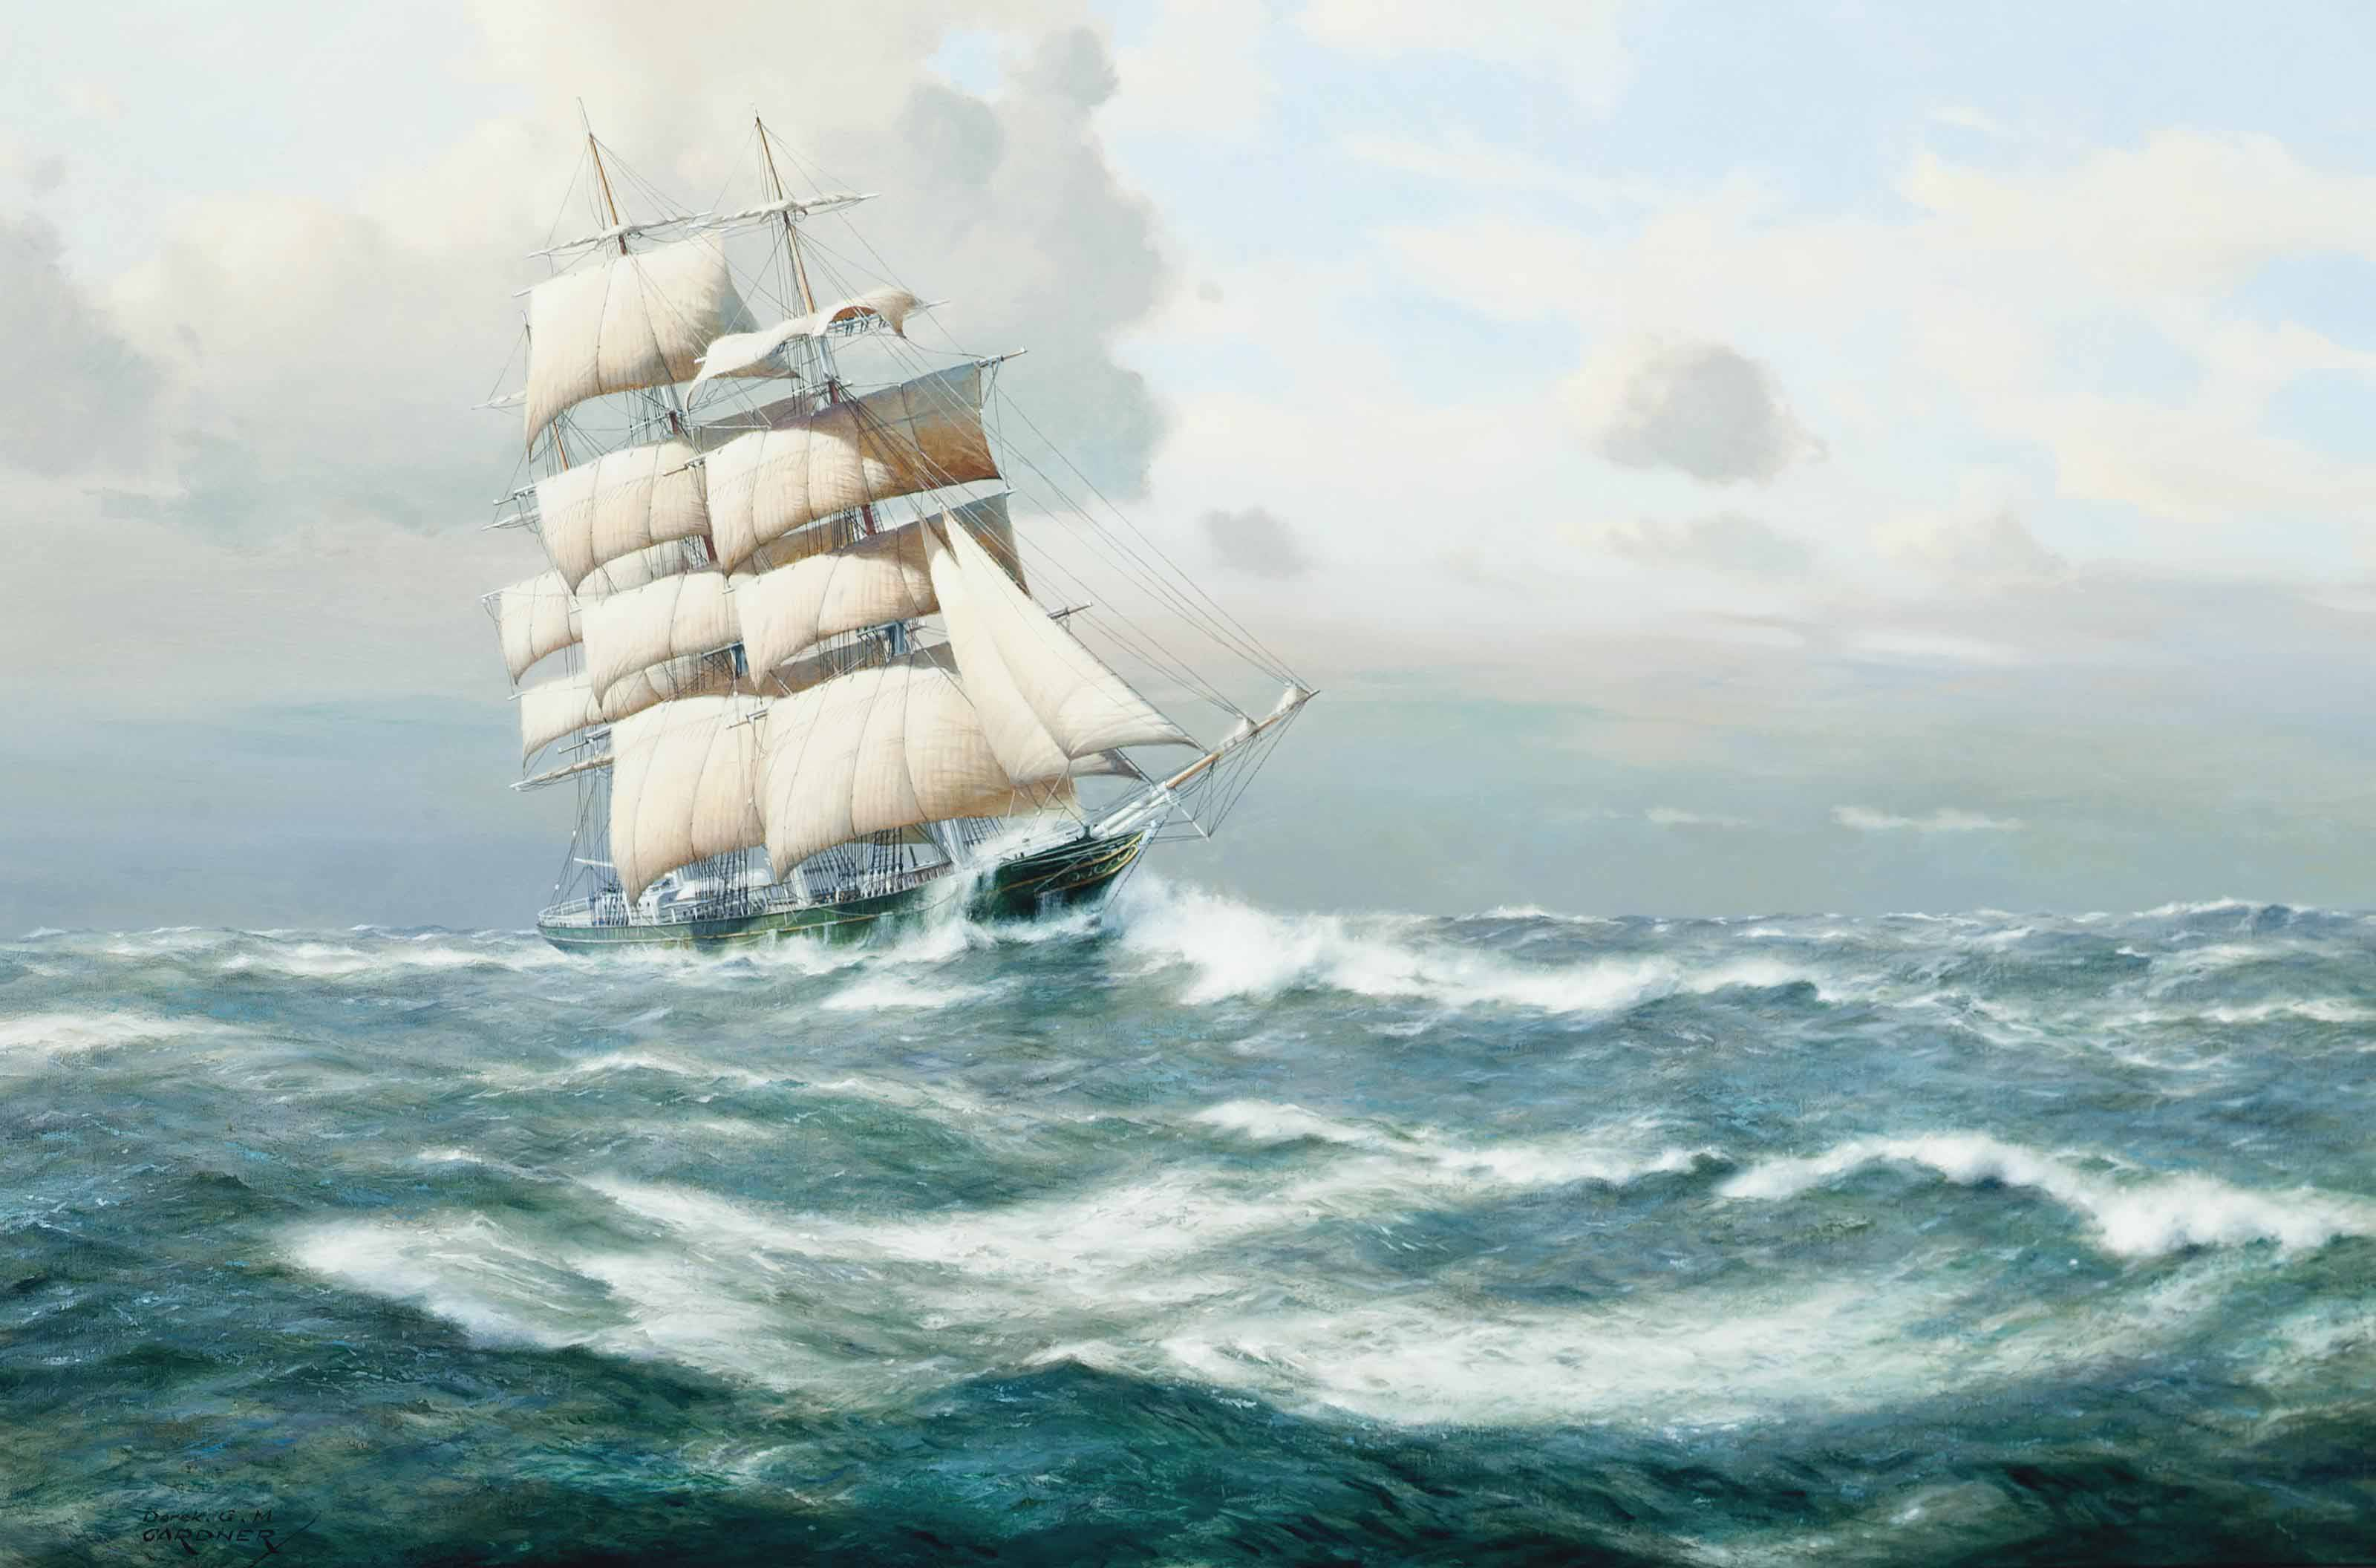 The renowned tea clipper Thermopylae battling the elements